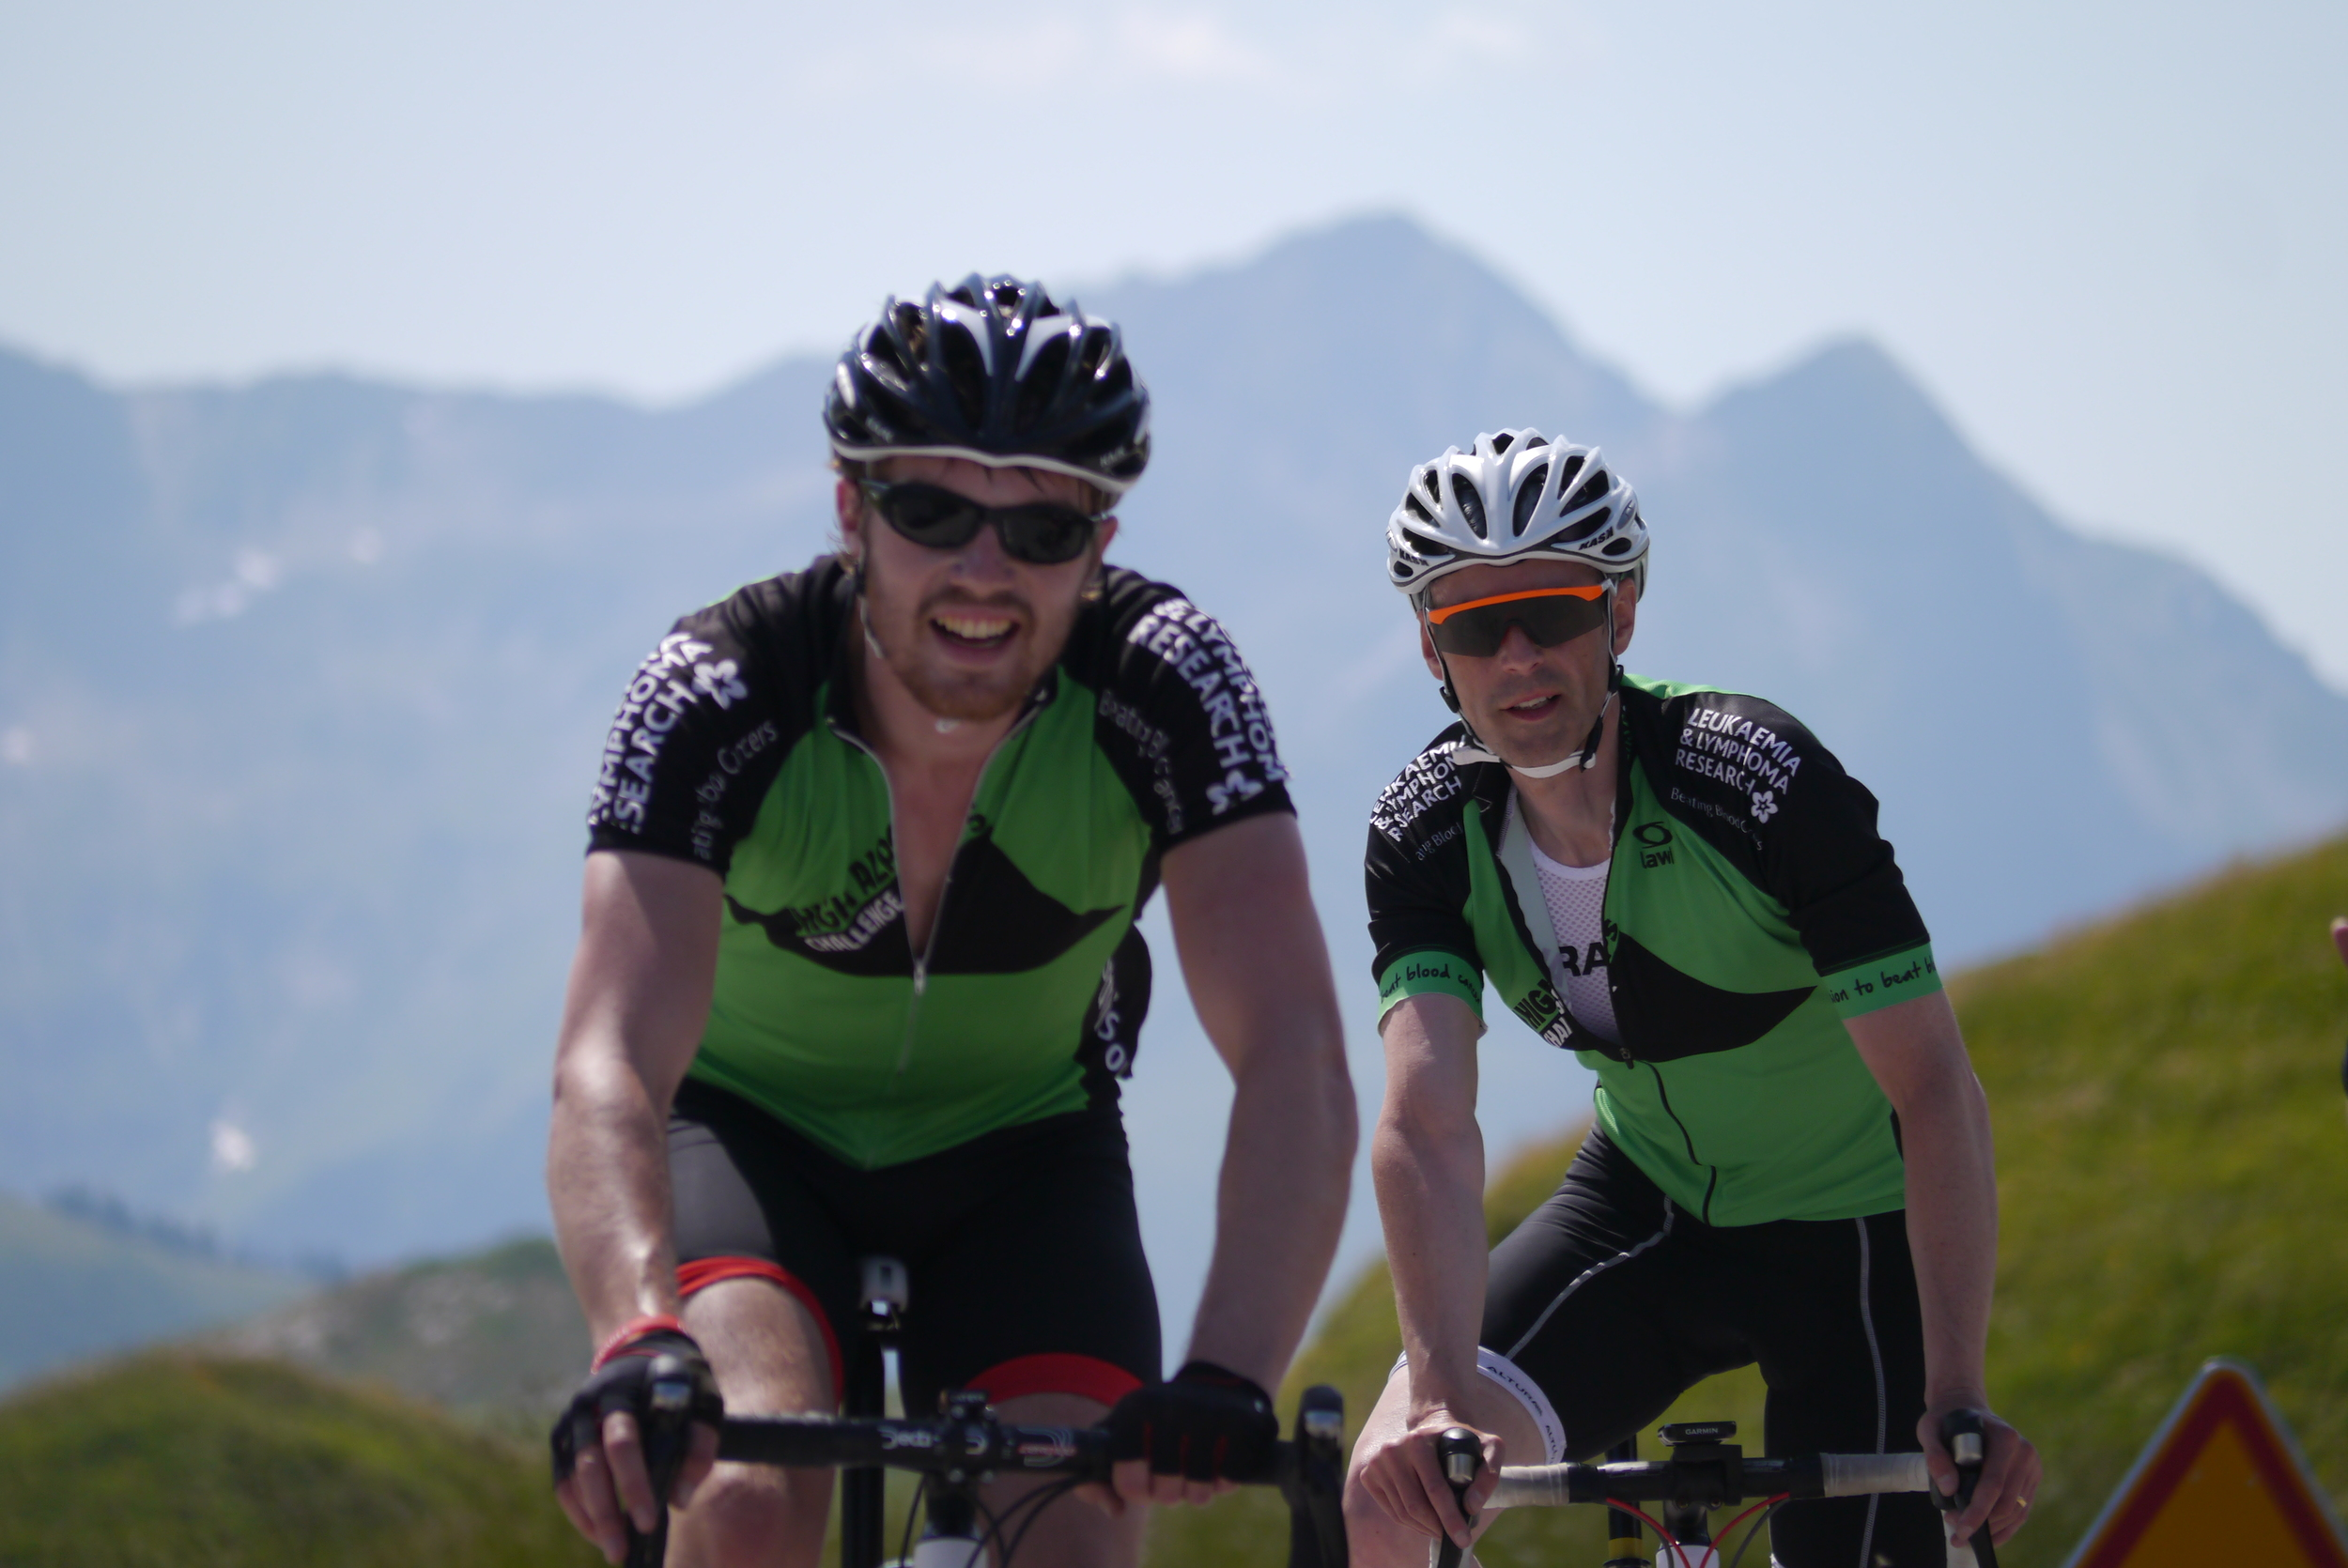 Andrew cycled across the alps, just to have the opportunity to photobomb Simon's moment of glory